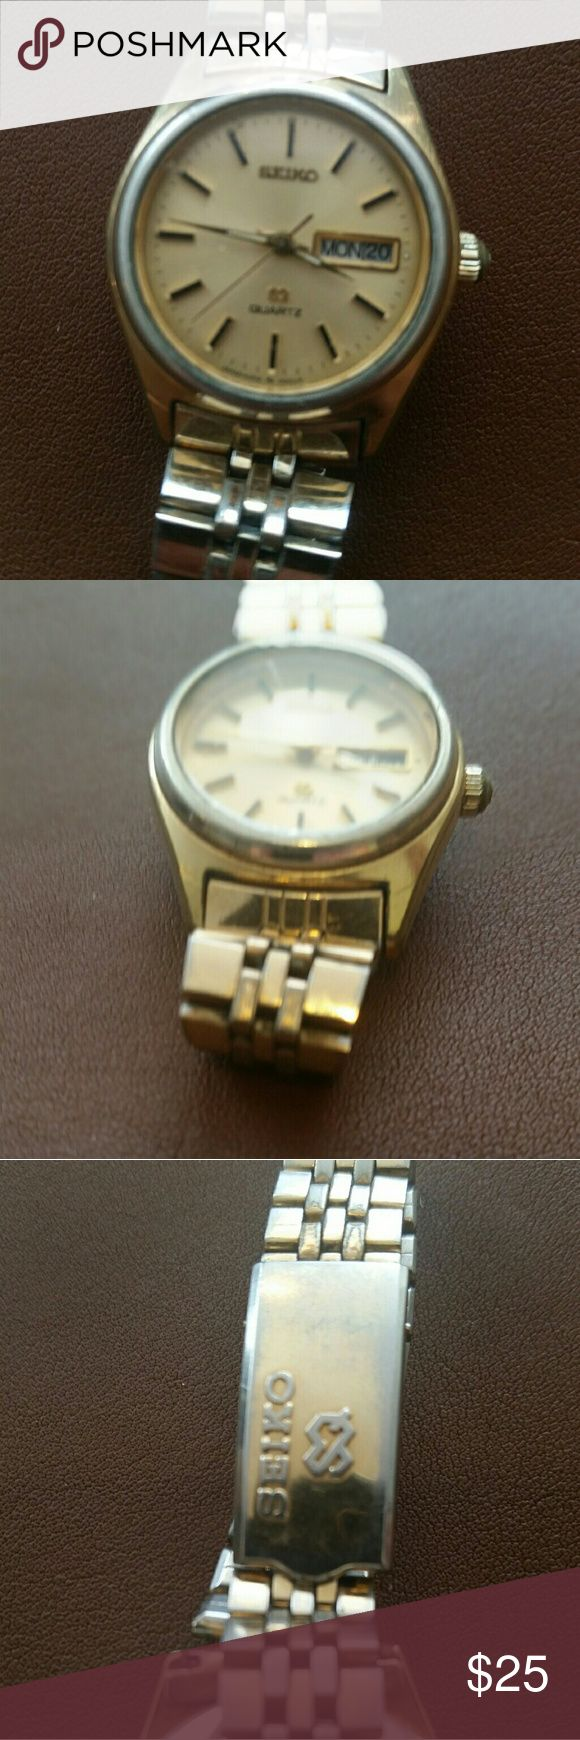 Vintage Seiko Quartz Watch WORKING Classic early 1990's style Seiko Quartz women's wristwatch with brand new battery. Gold tone is a bit faded and face has some scratches, but watch works well. Seiko Accessories Watches